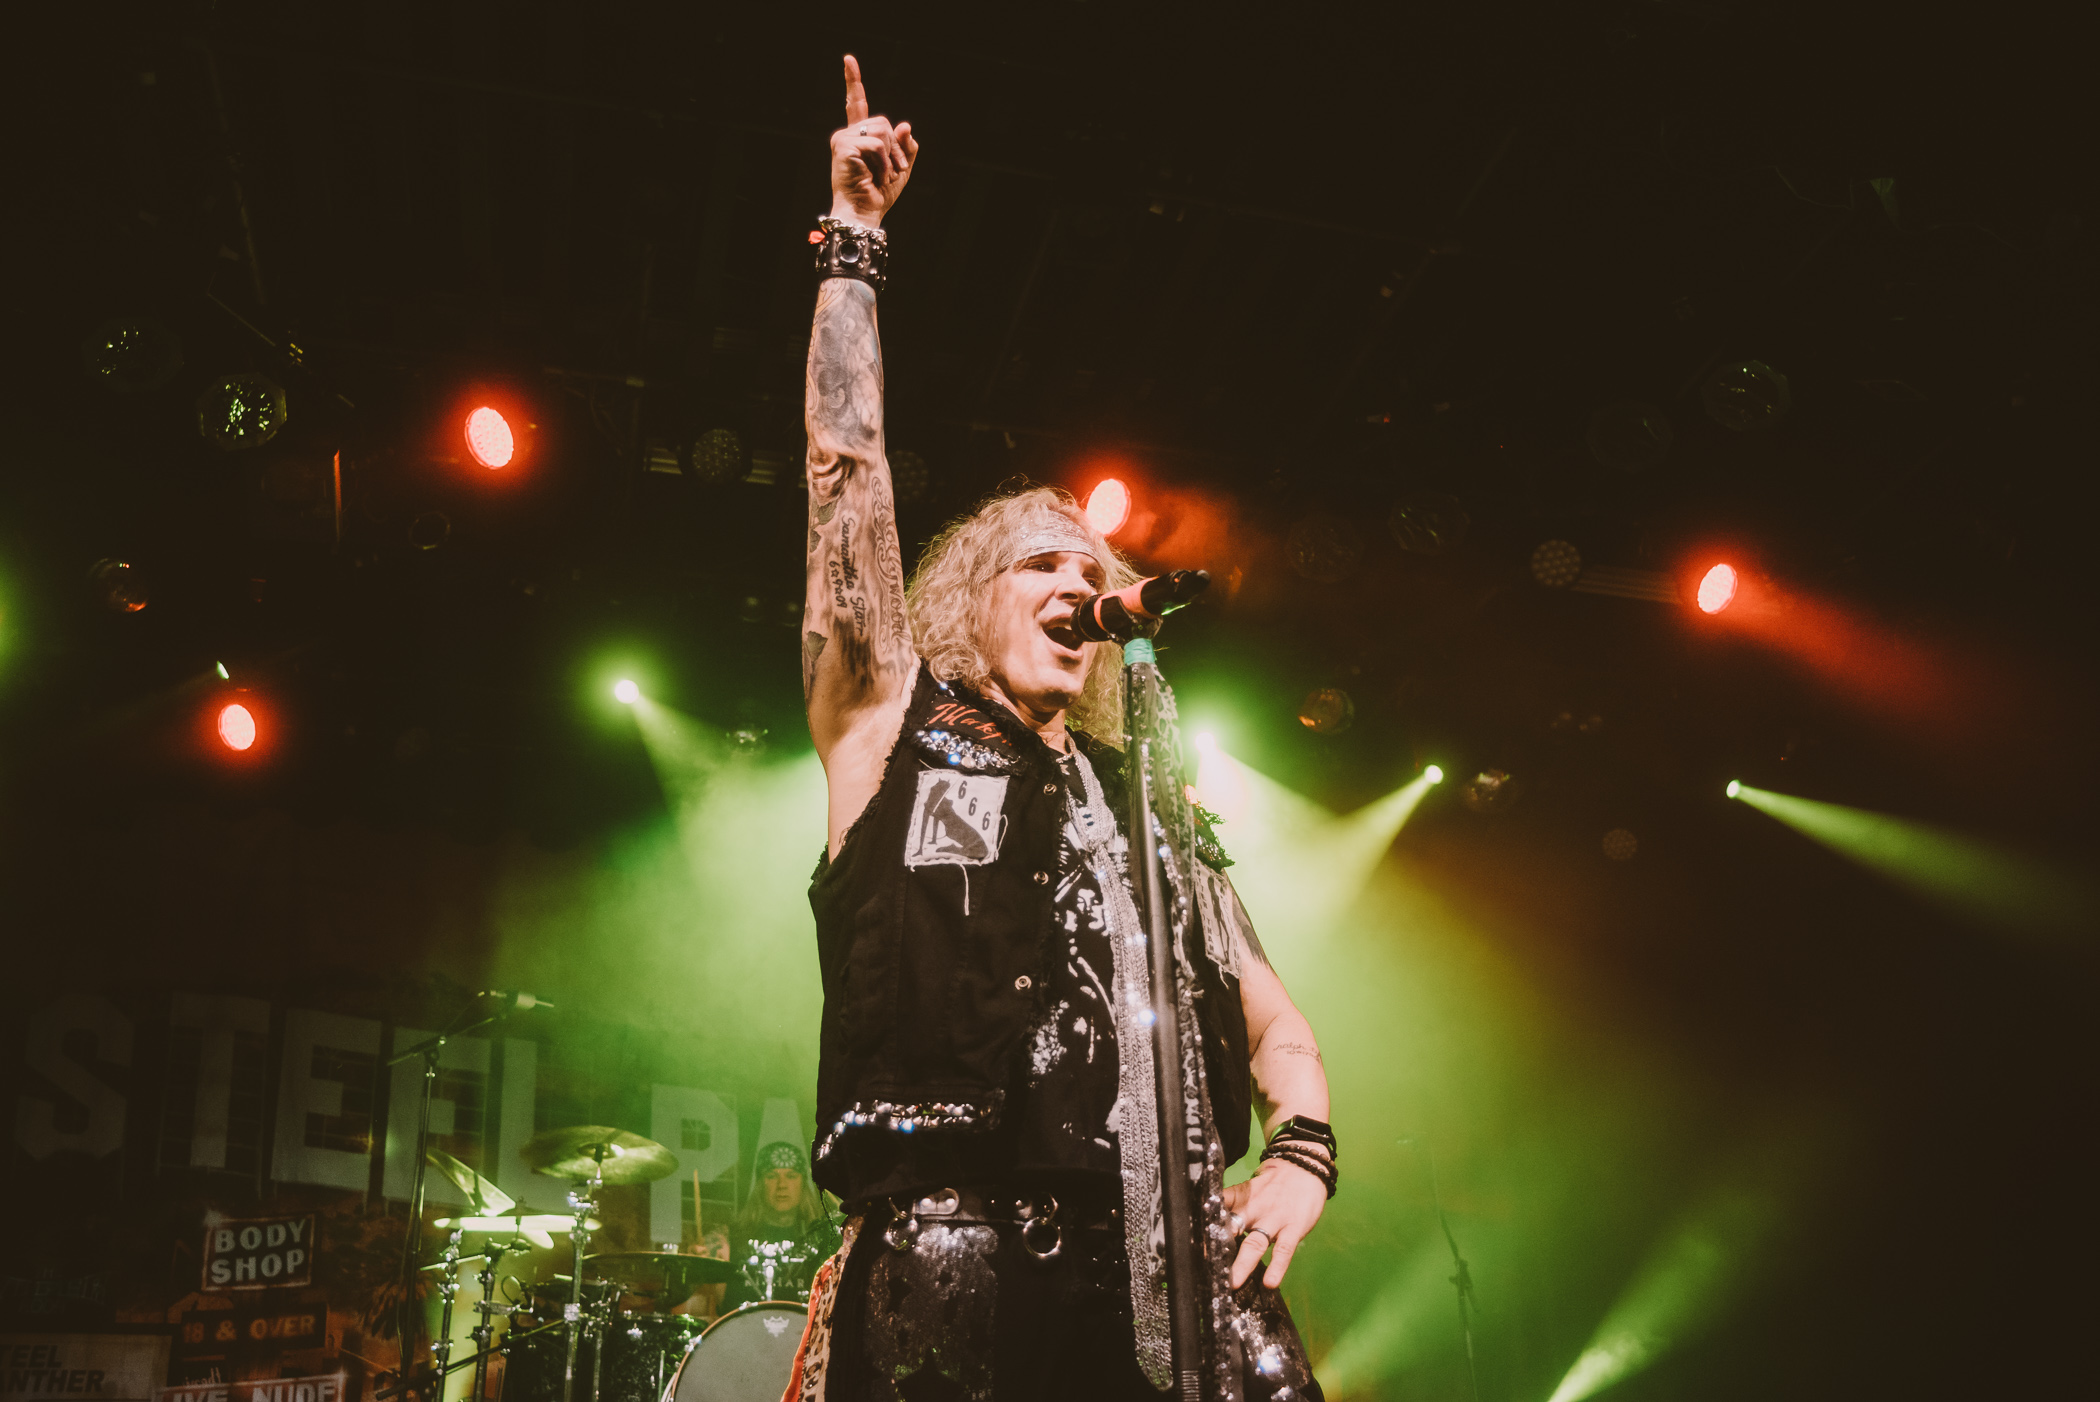 1_Steel_Panther-Commodore-Ballroom-Timothy_Nguyen-20190411 (17 of 21).JPG